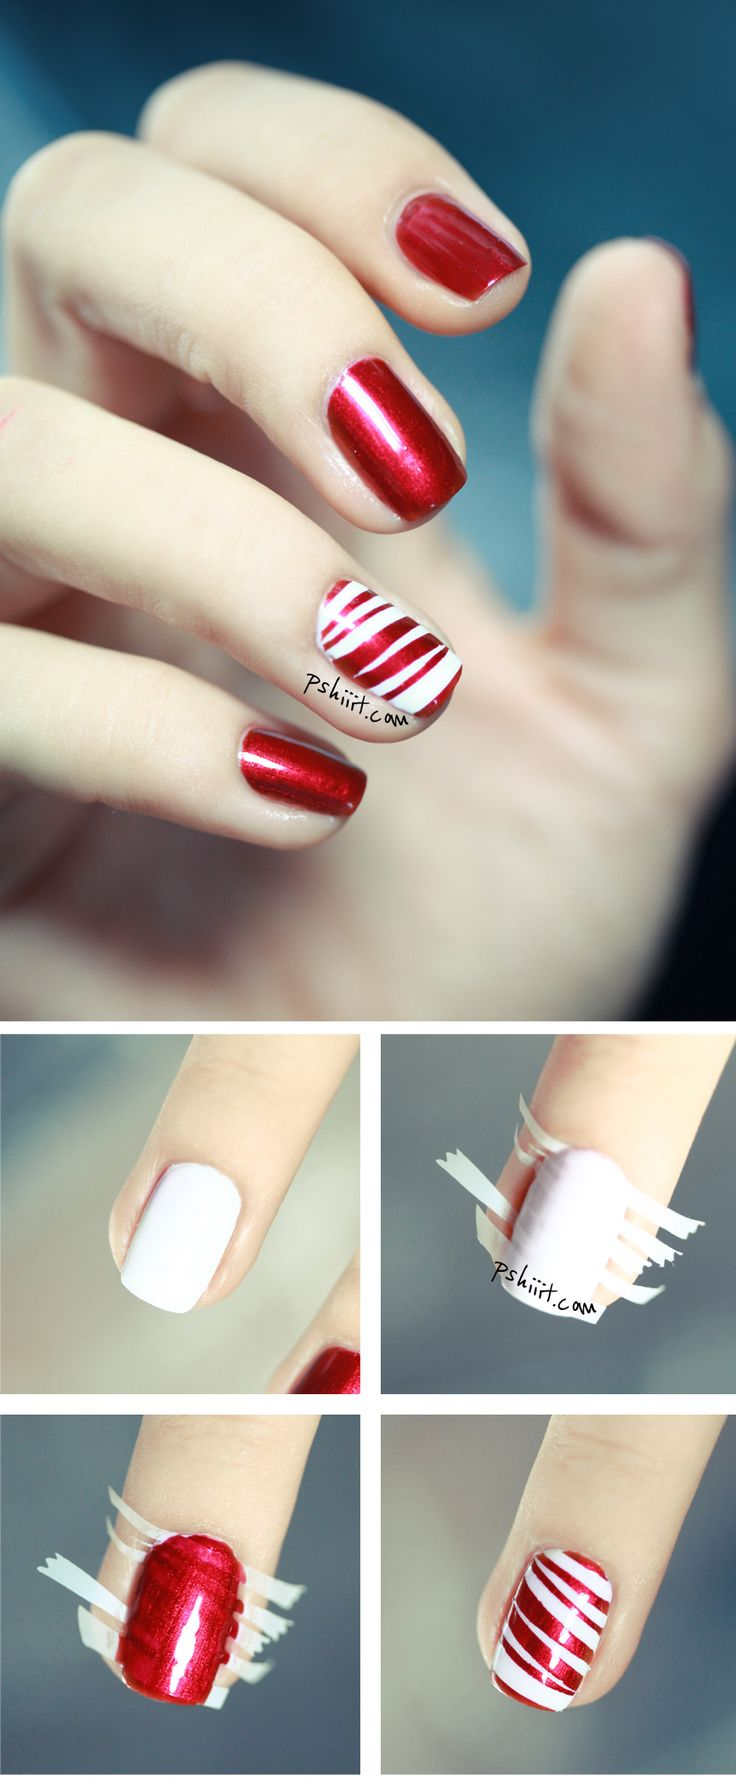 Candy cane. Love this for the holidays!